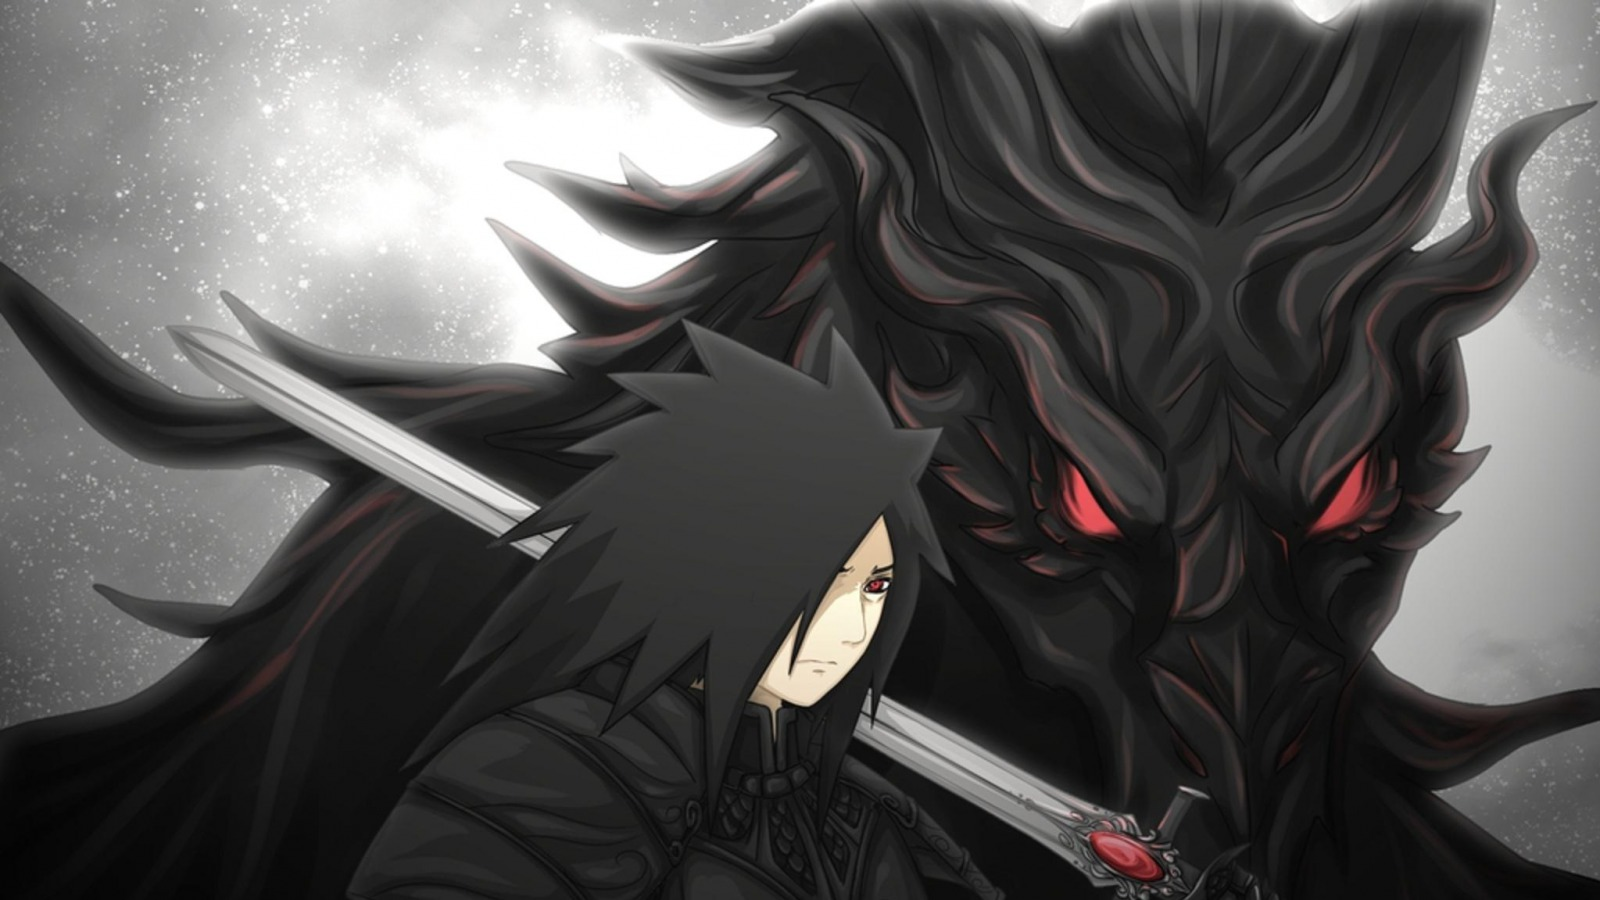 Madara Uchiha 18 Wallpapers Your daily Anime Wallpaper 1600x900